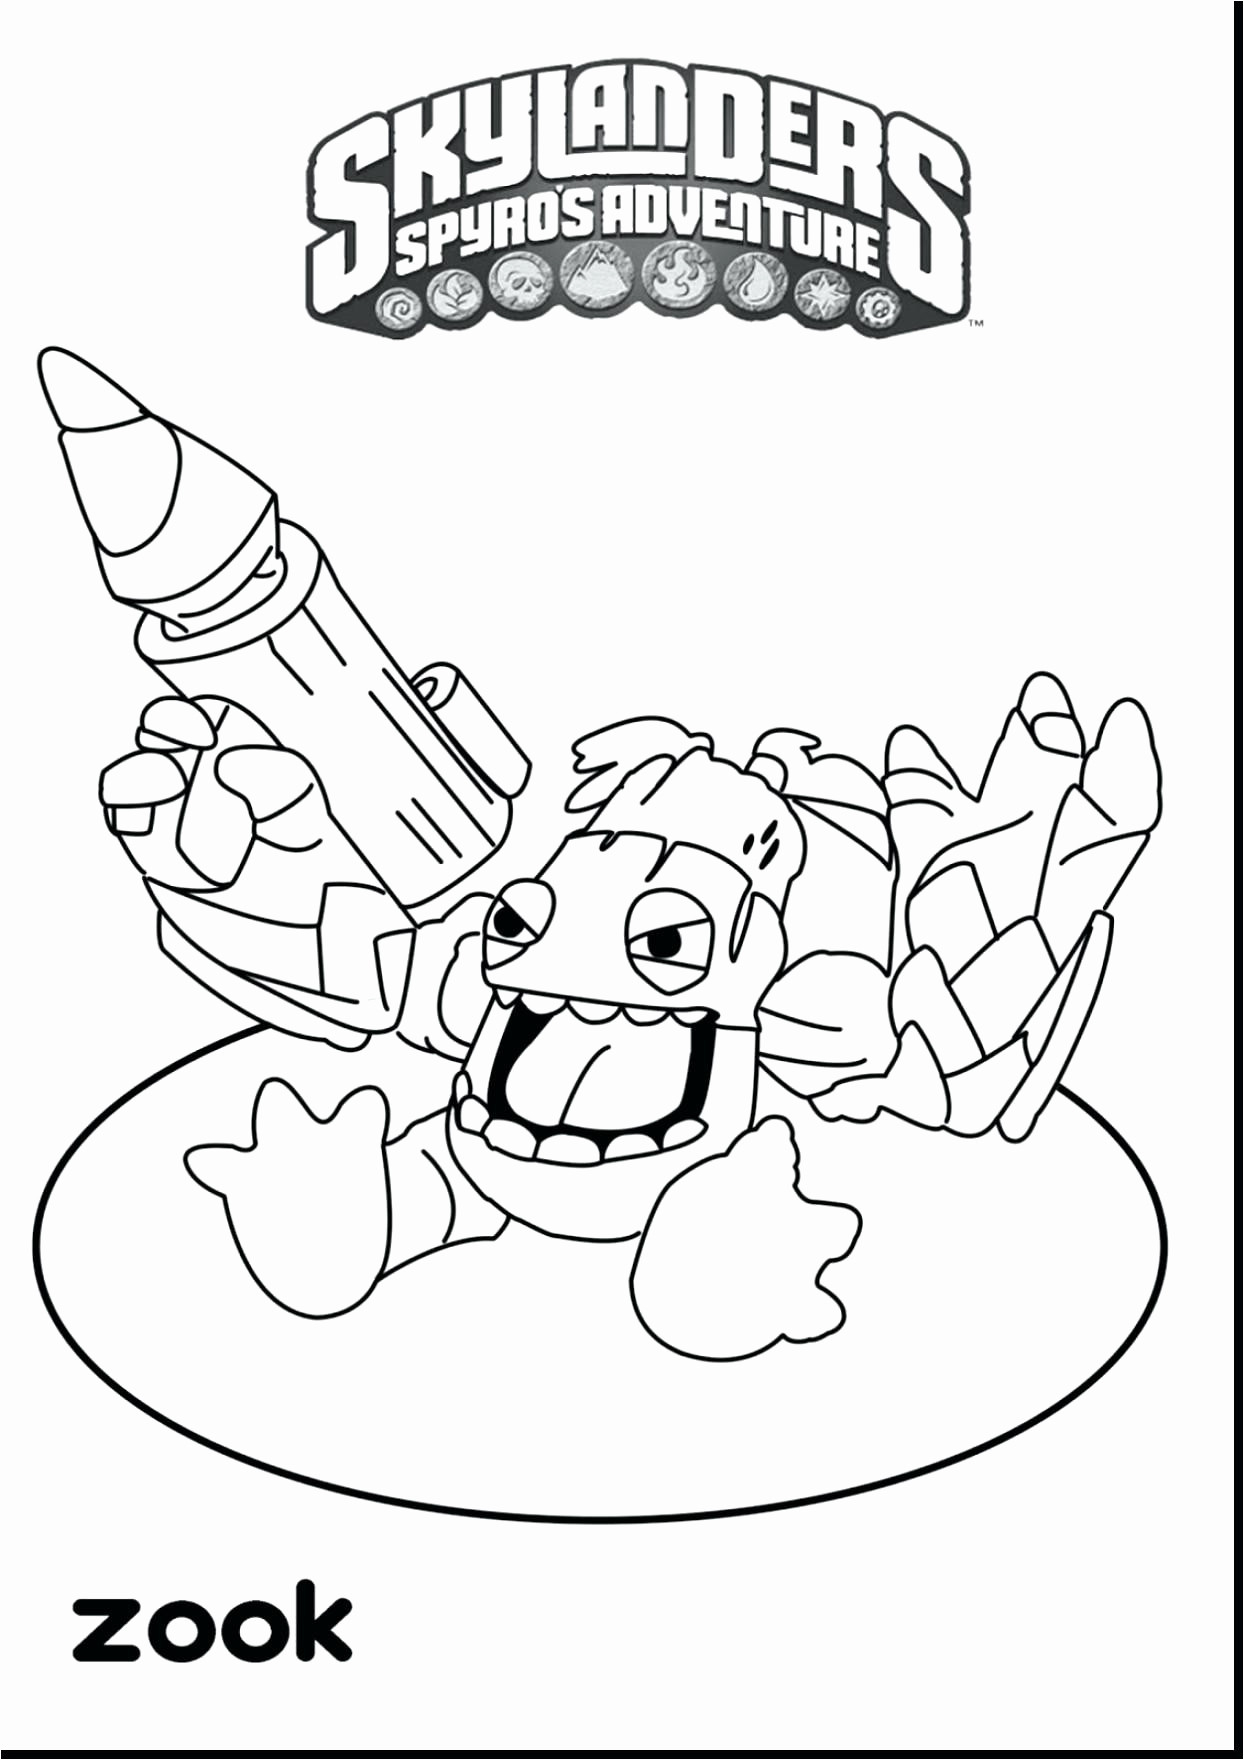 Elf Coloring Pages Printable  Download 2q - To print for your project